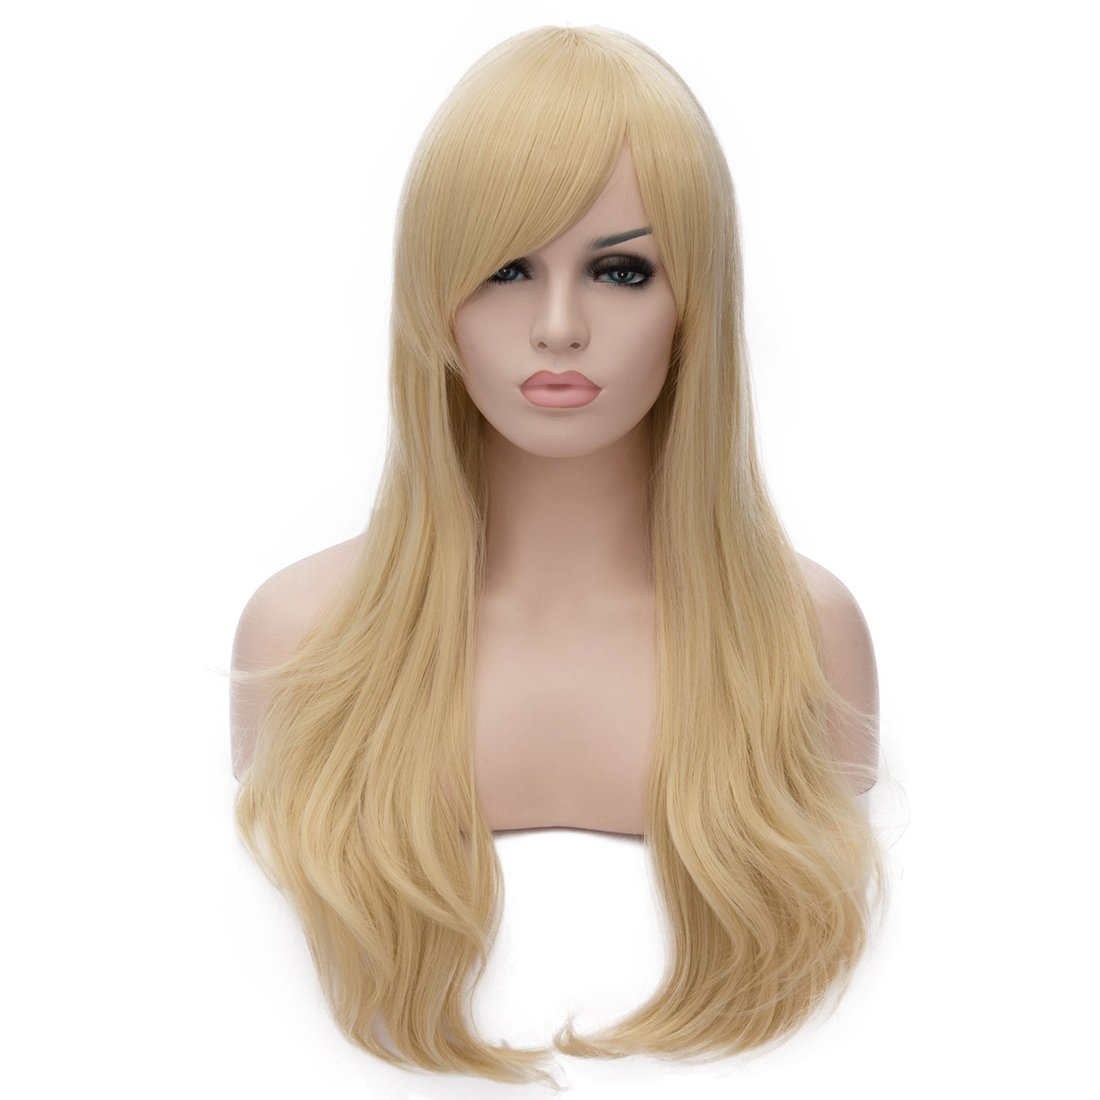 YOPO 28 Wig Long Big Wavy Hair Women Cosplay Party Costume Wig(Silvery White)